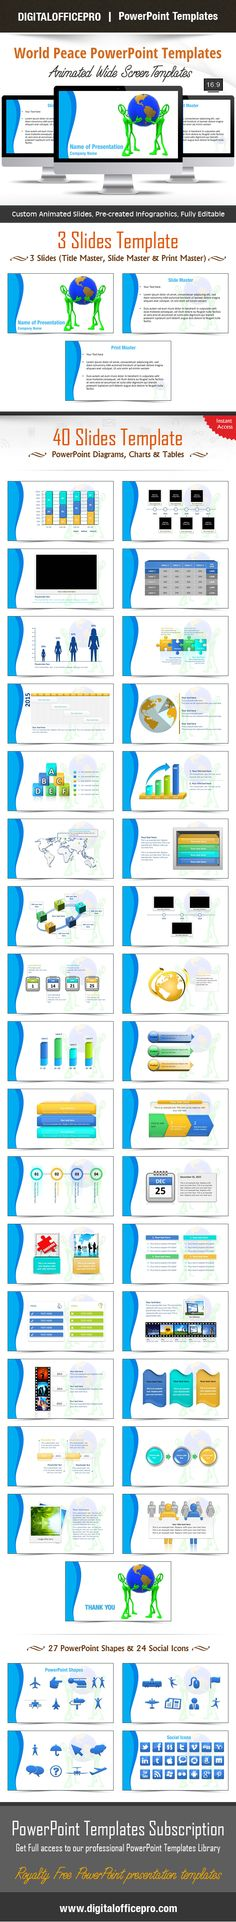 Impress and Engage your audience with World Peace PowerPoint Template and World Peace PowerPoint Backgrounds from DigitalOfficePro. Each template comes with a set of PowerPoint Diagrams, Charts & Shapes and are available for instant download.